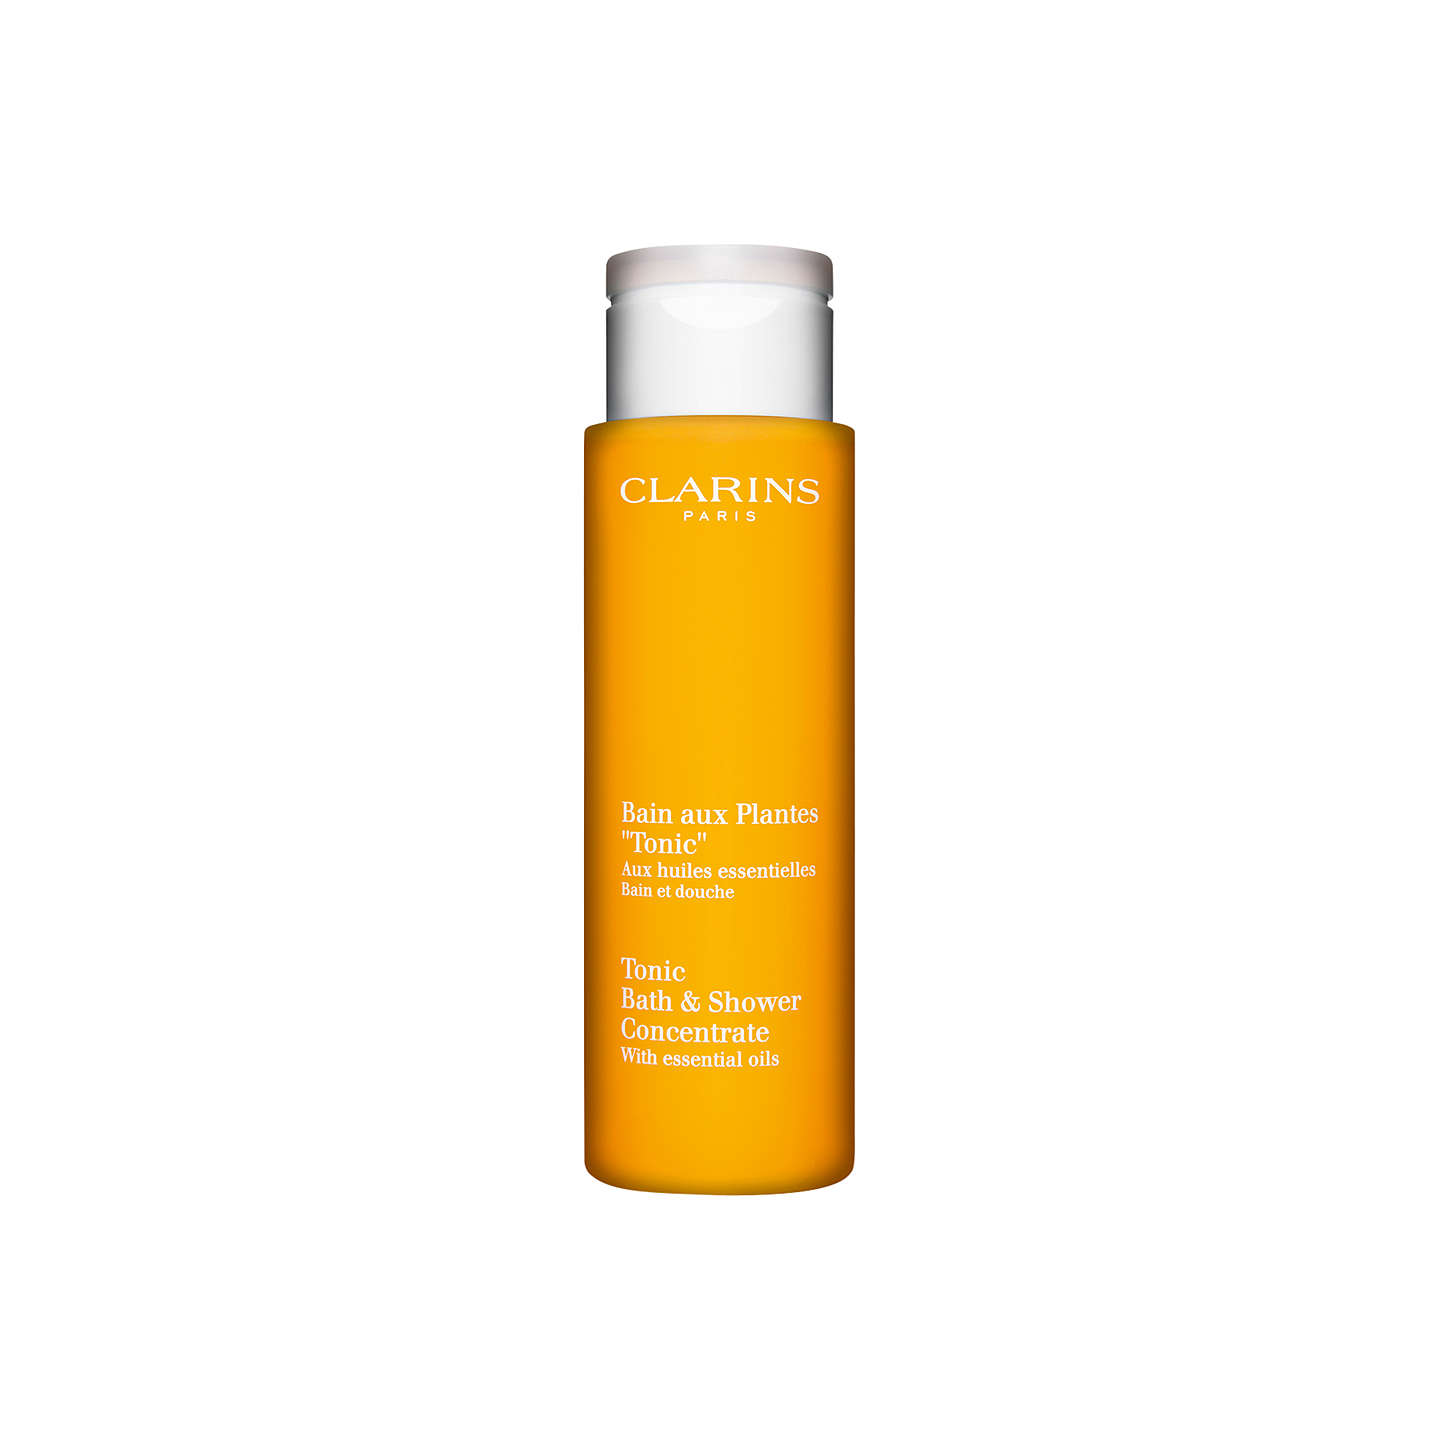 Clarins Tonic Bath And Shower Concentrate 200ml At John Lewis